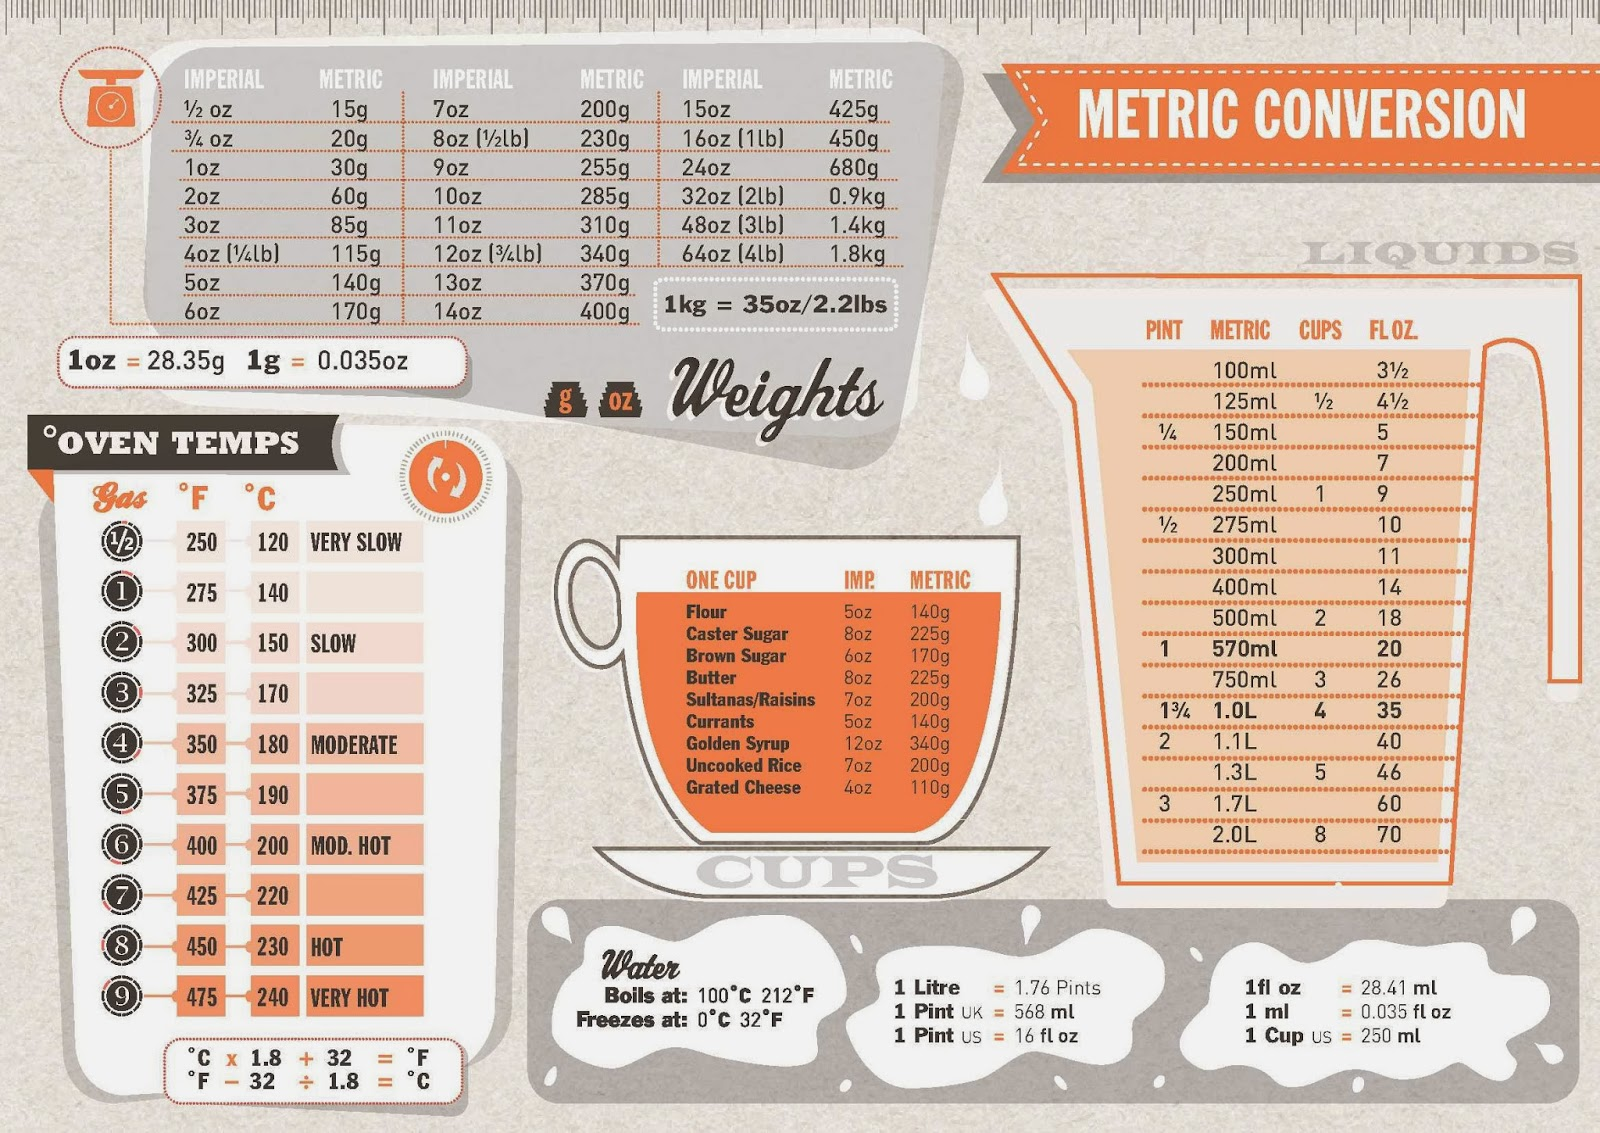 Metric System Conversions